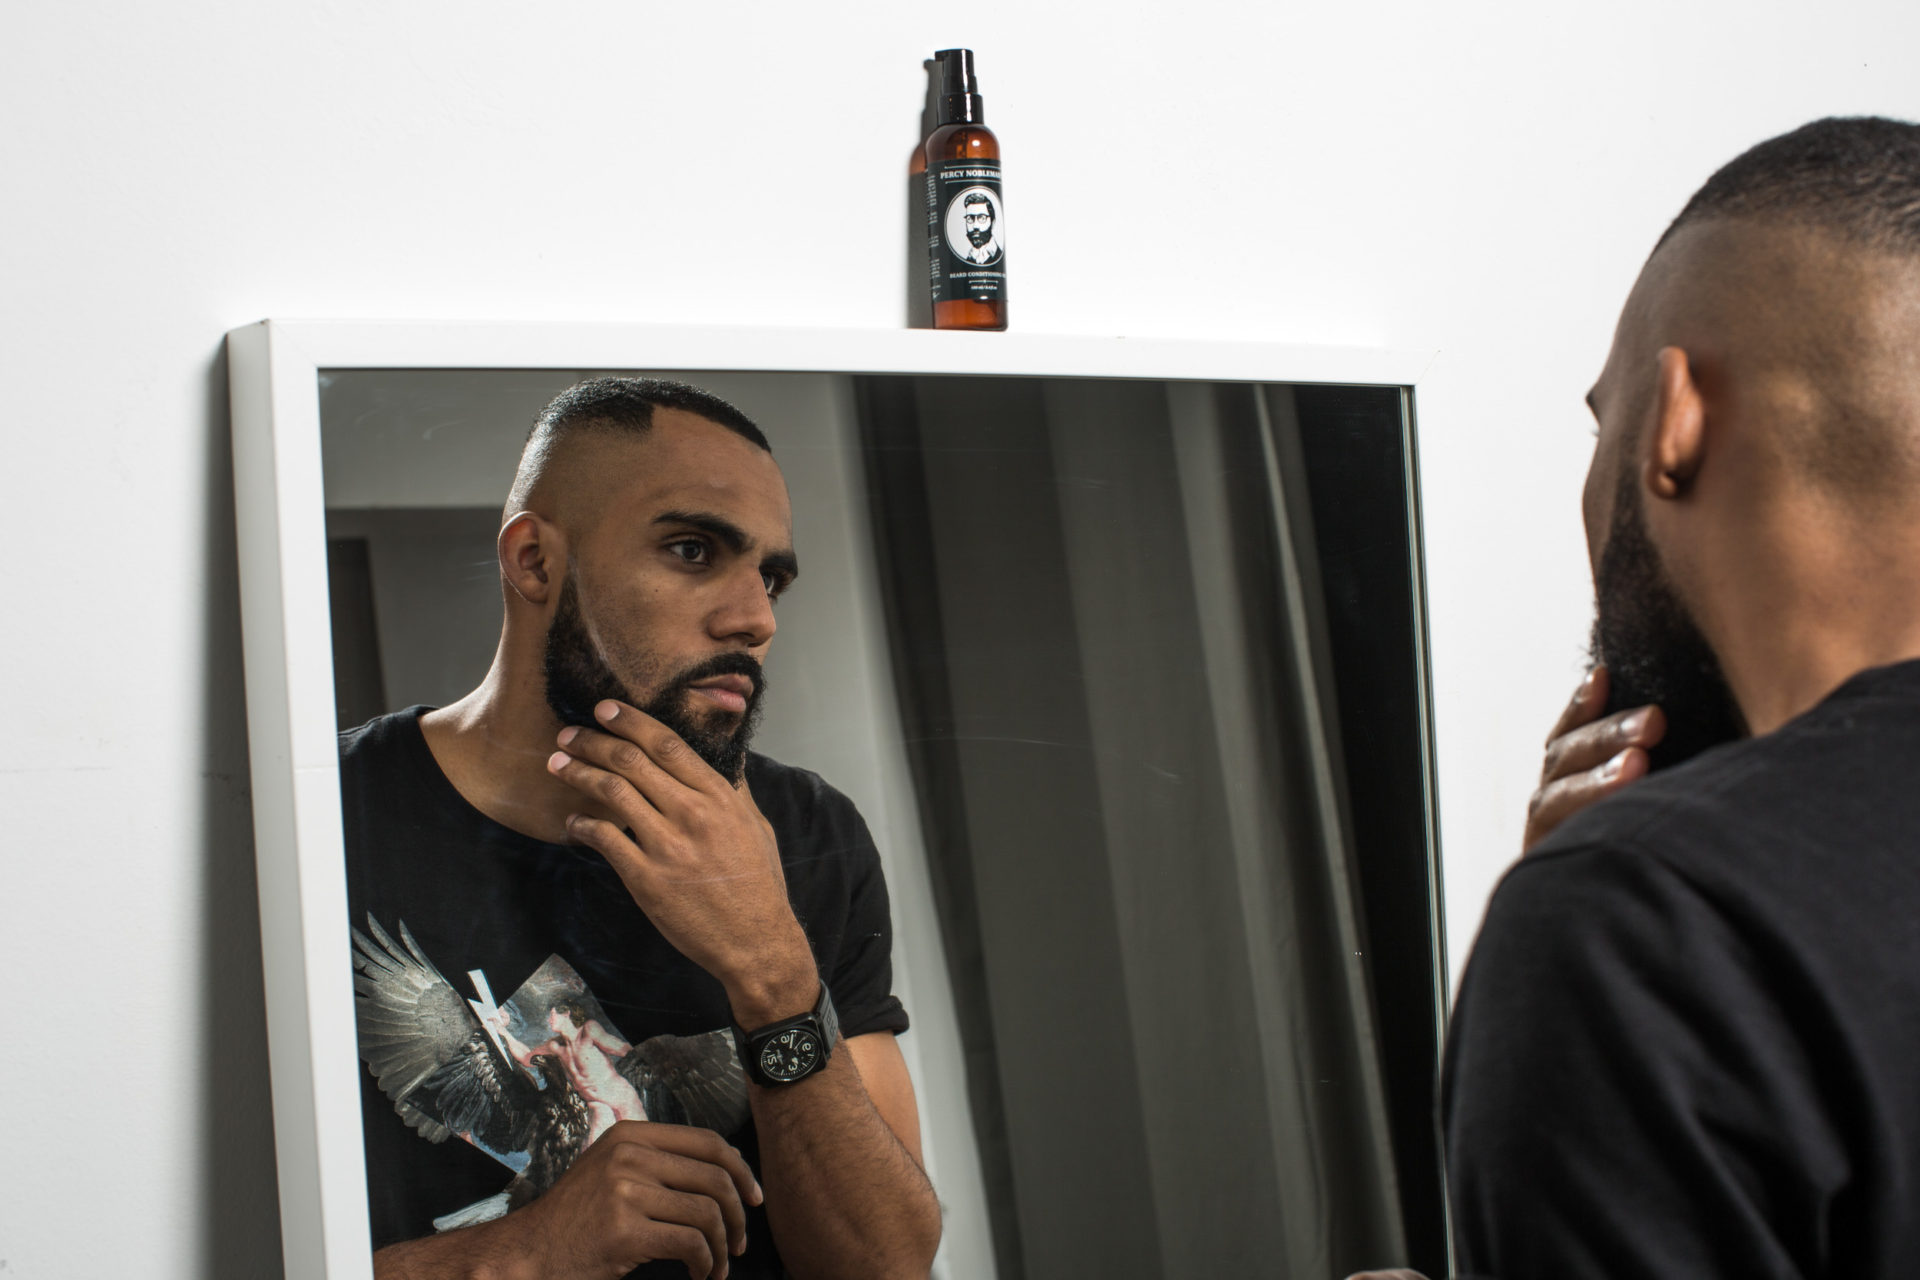 Percy Nobleman's Beard Oil inside New Kiss on the Blog's BloggerBoxx